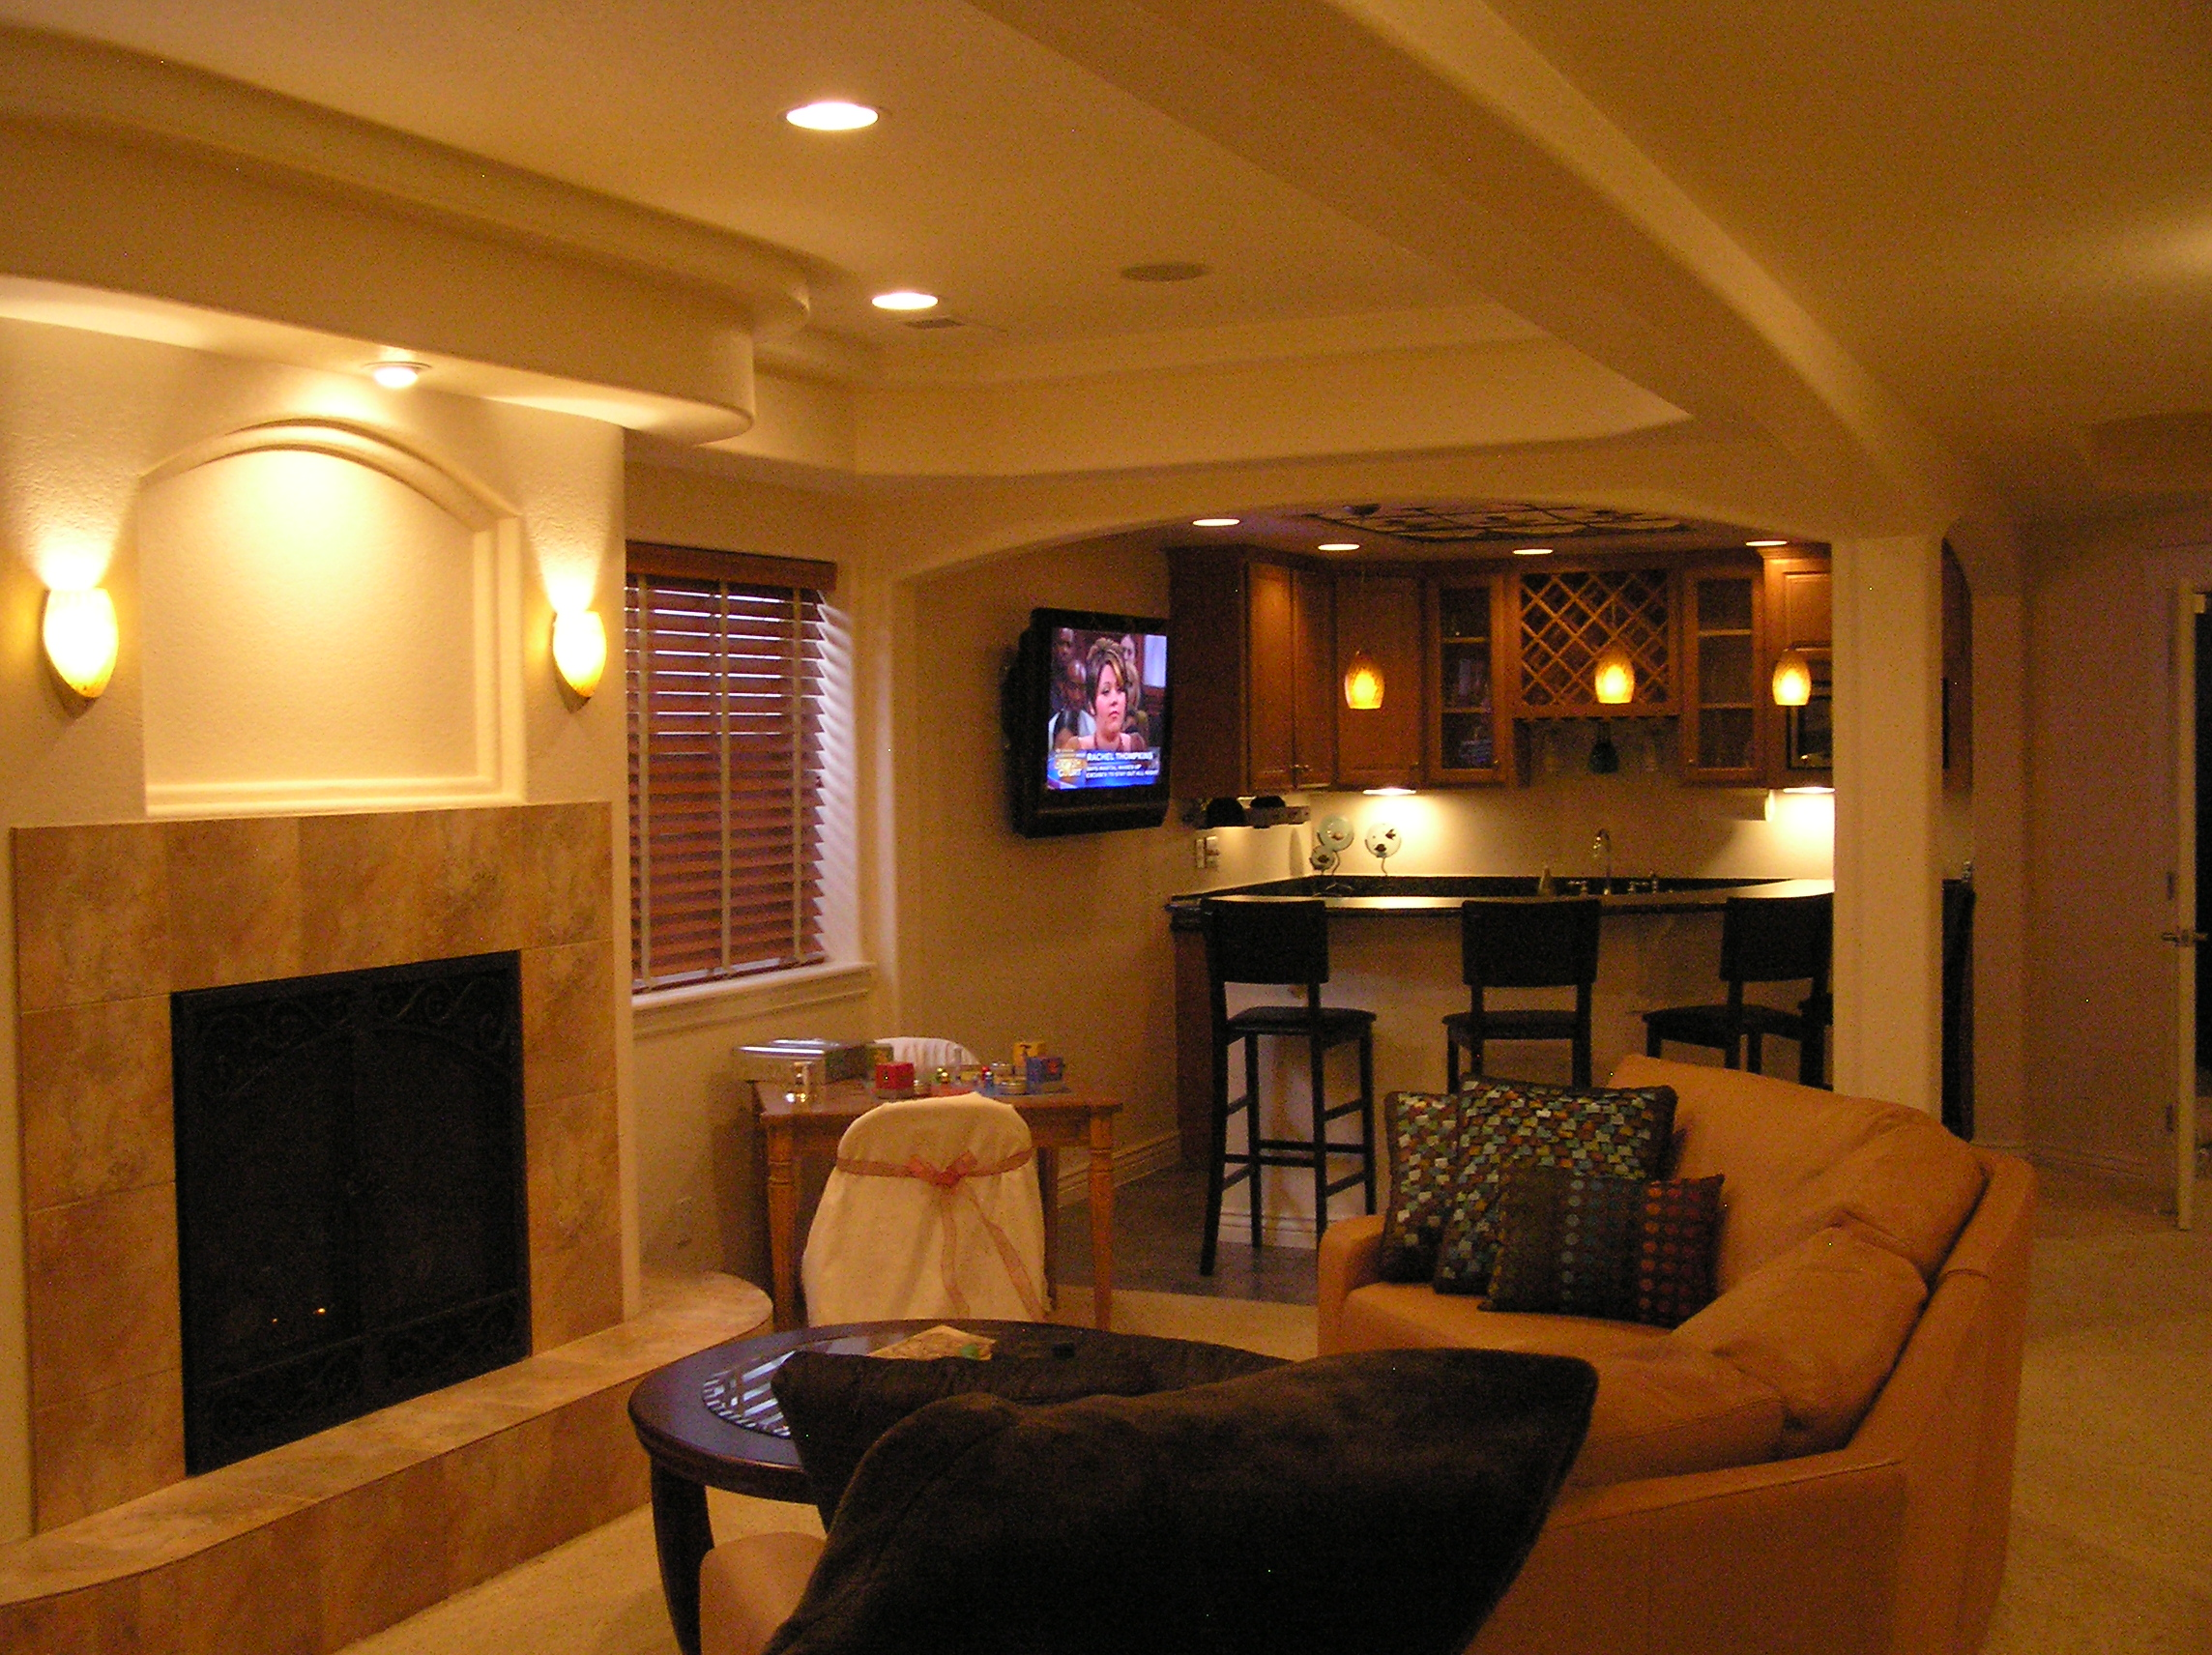 design basement ideas photo - 3